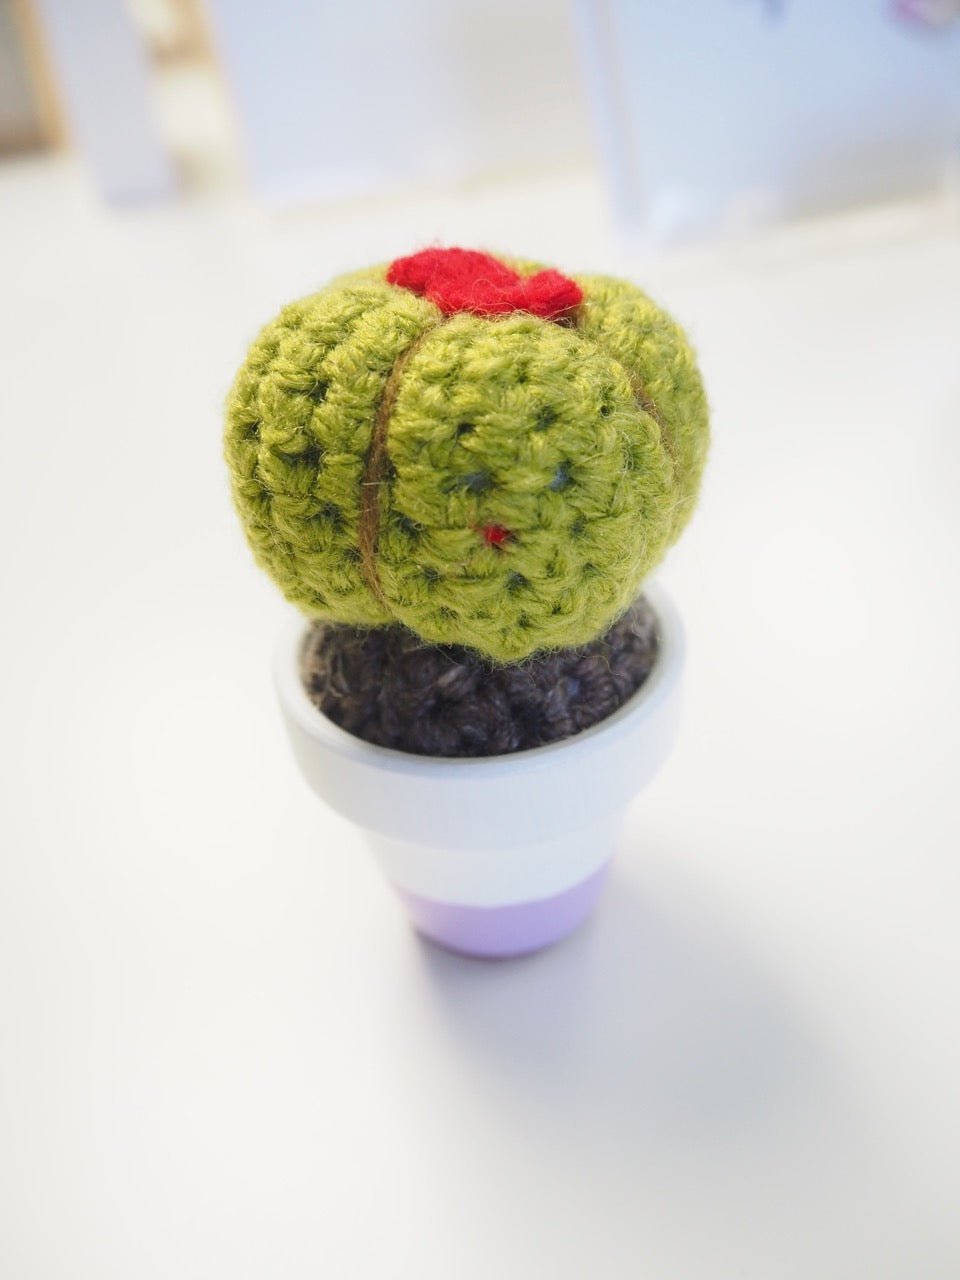 Crochet Potted Cactus - Barrel